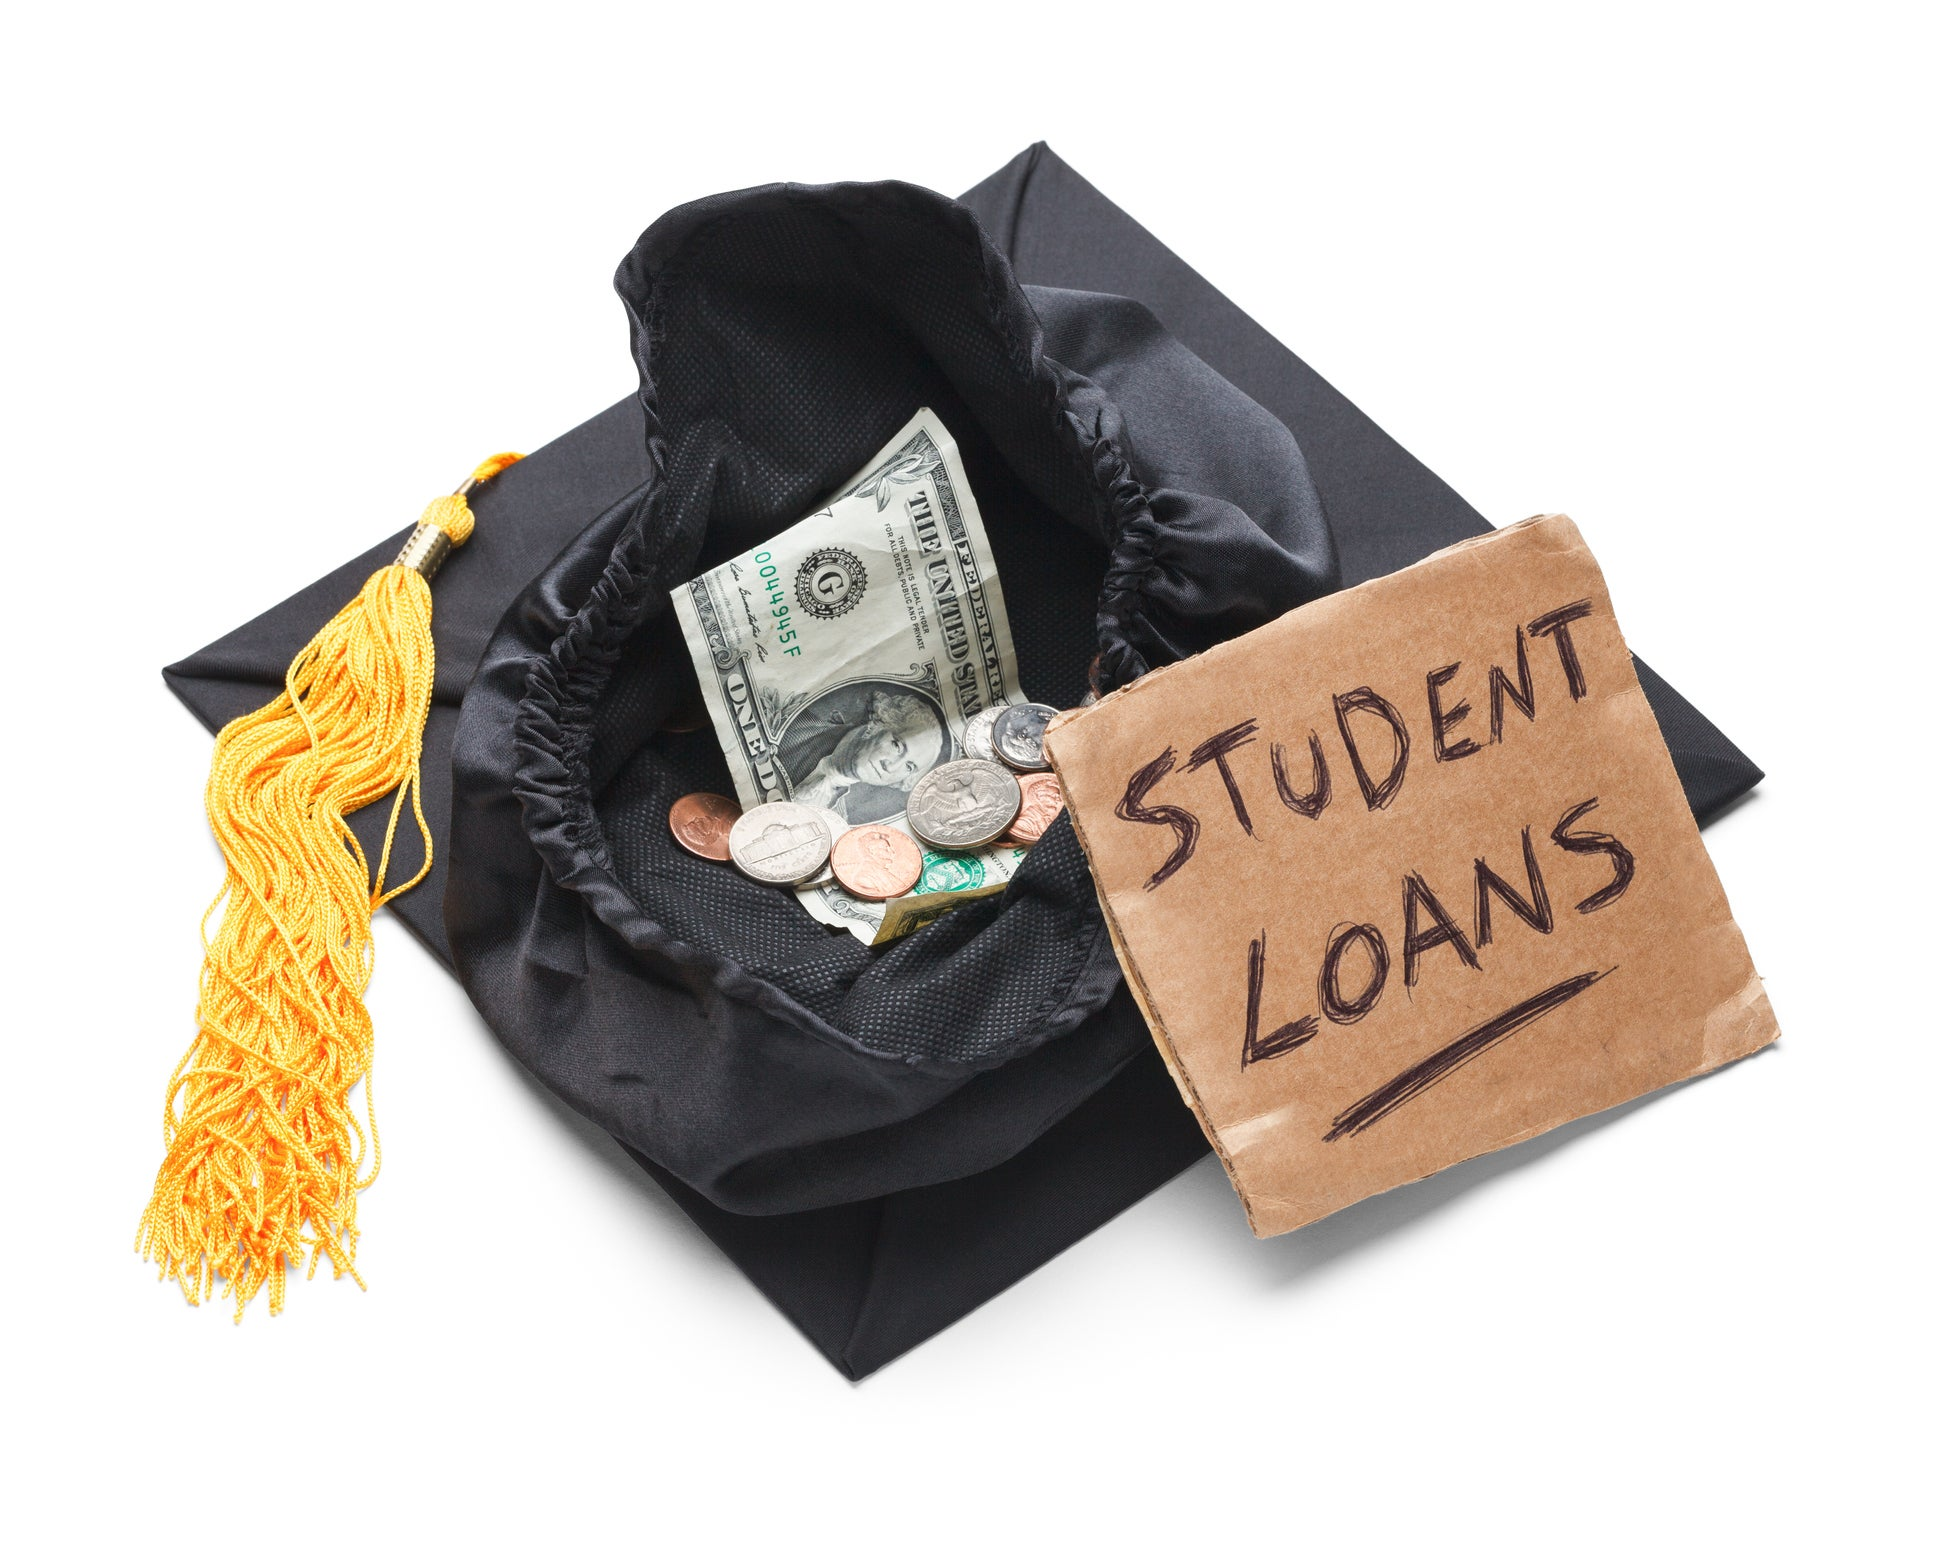 Sign reading student loans next to a graduation cap filled with loose change